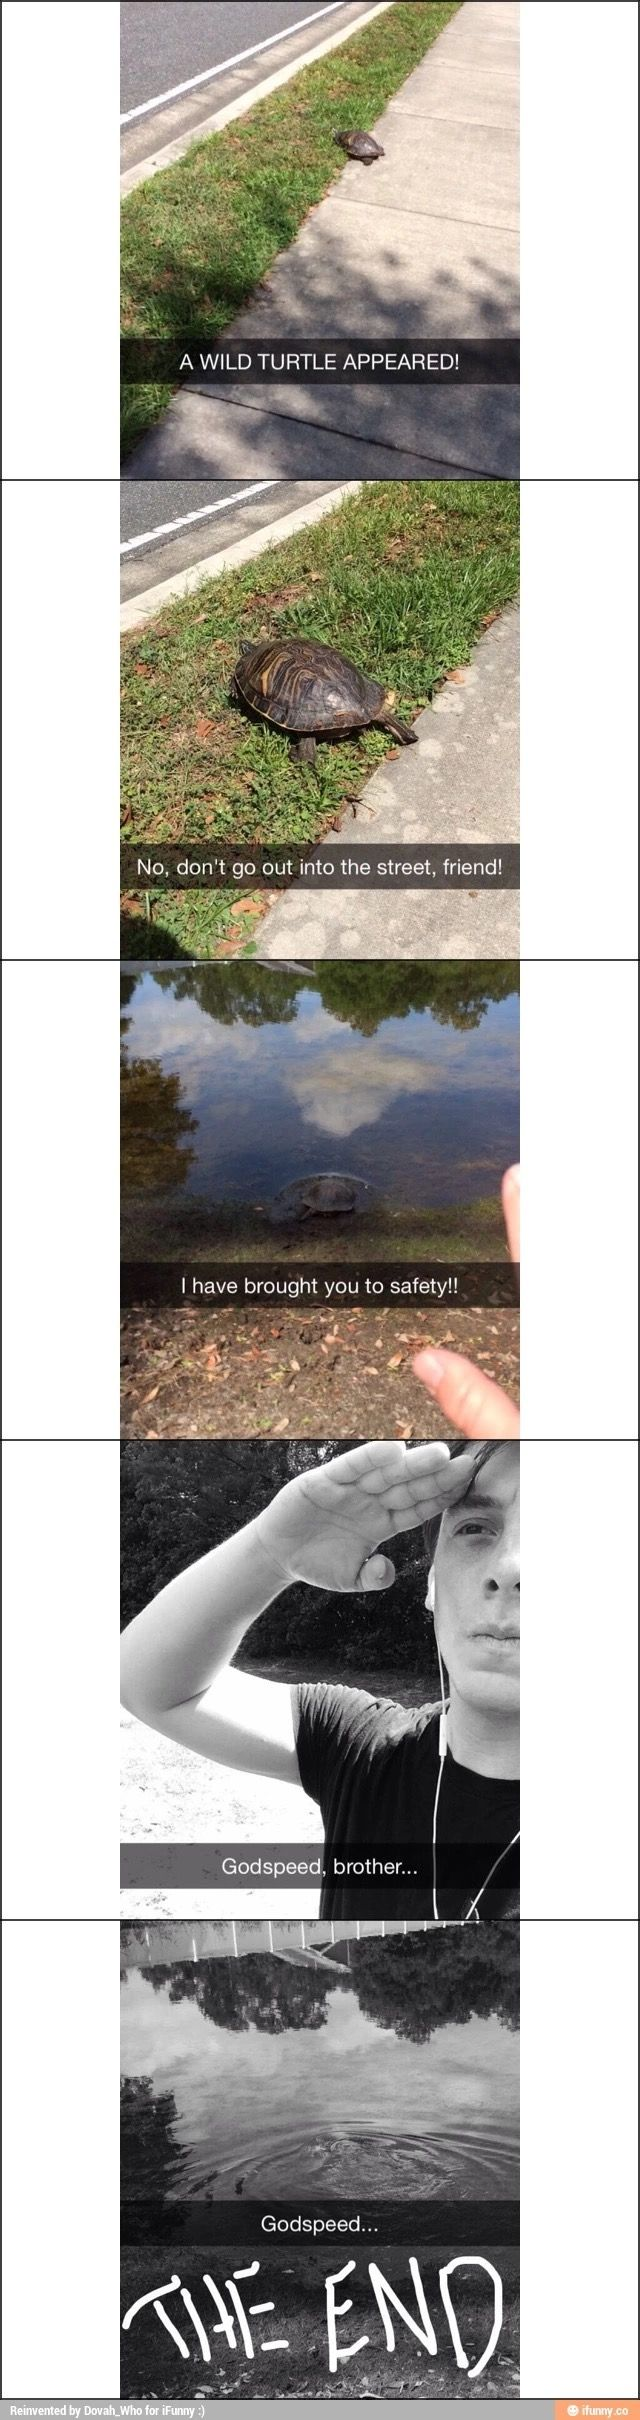 This guy is awesome!!!   *UPDATE* In response to the constant debate in the comments: I don't believe it is a tortoise. All I know is that the little guy went into the water willingly. Thomas did not throw or push it in, from what I can tell.